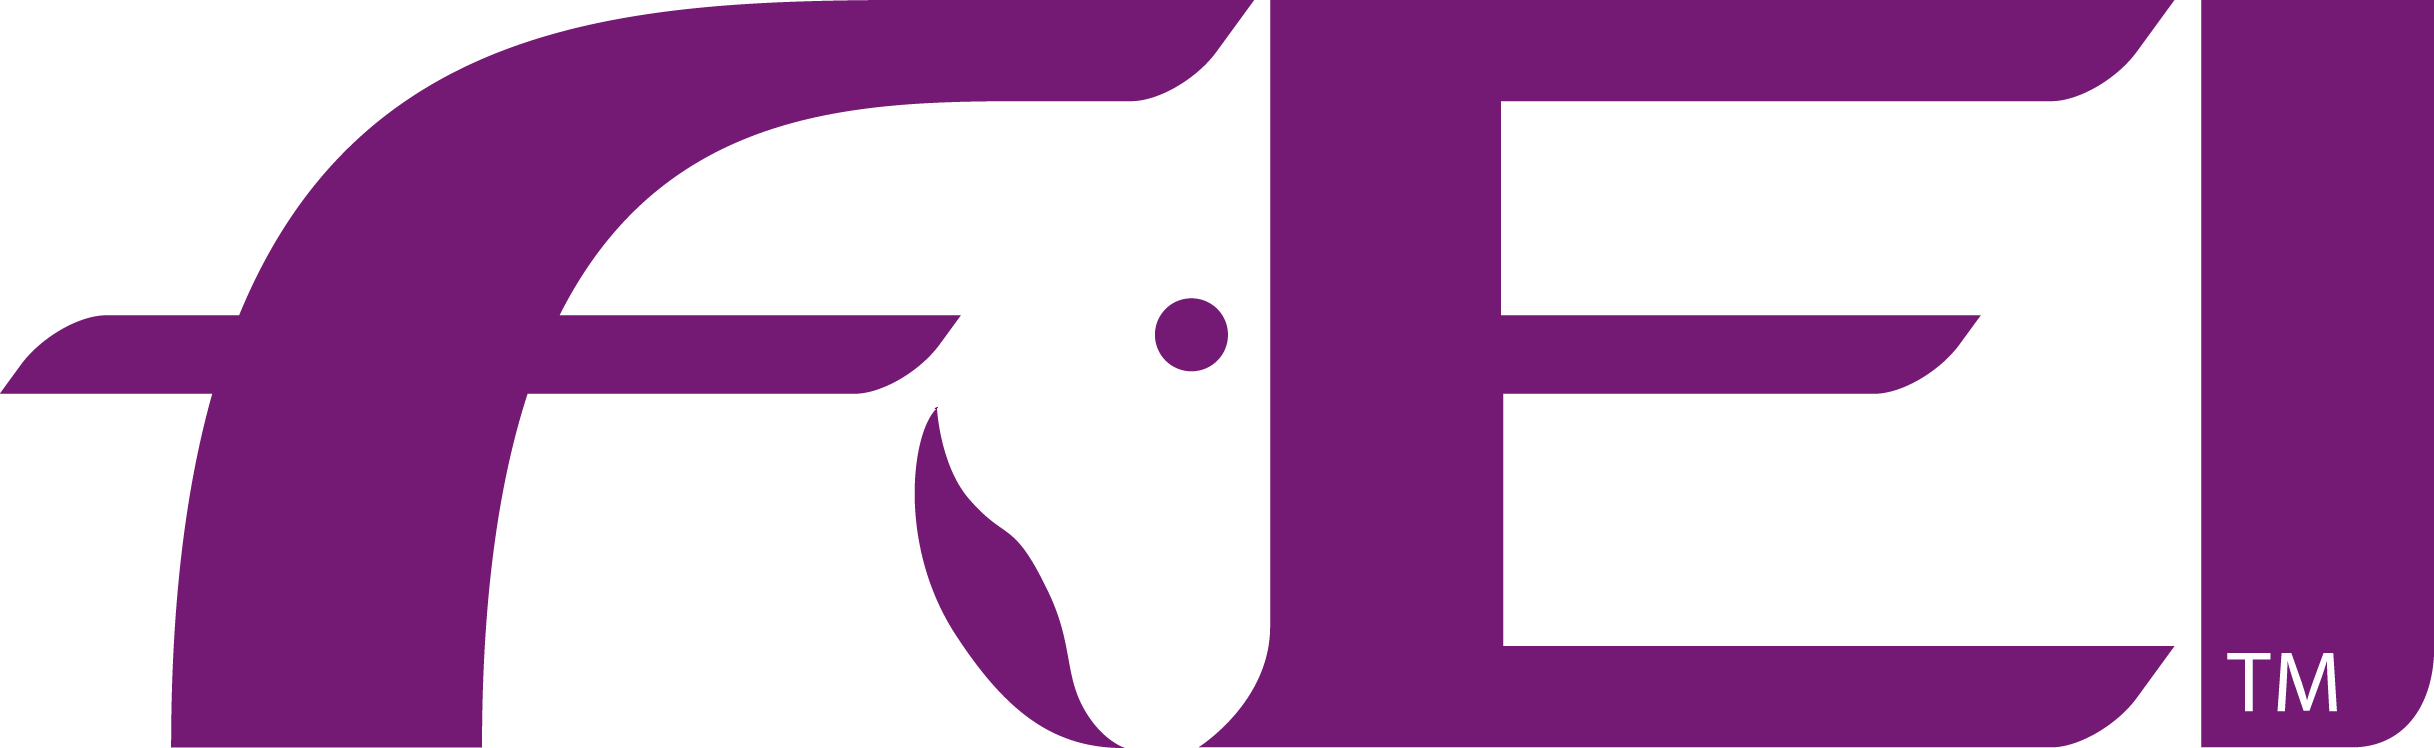 Fédération Équestre Internationale (FEI) Logo [fei.org] png